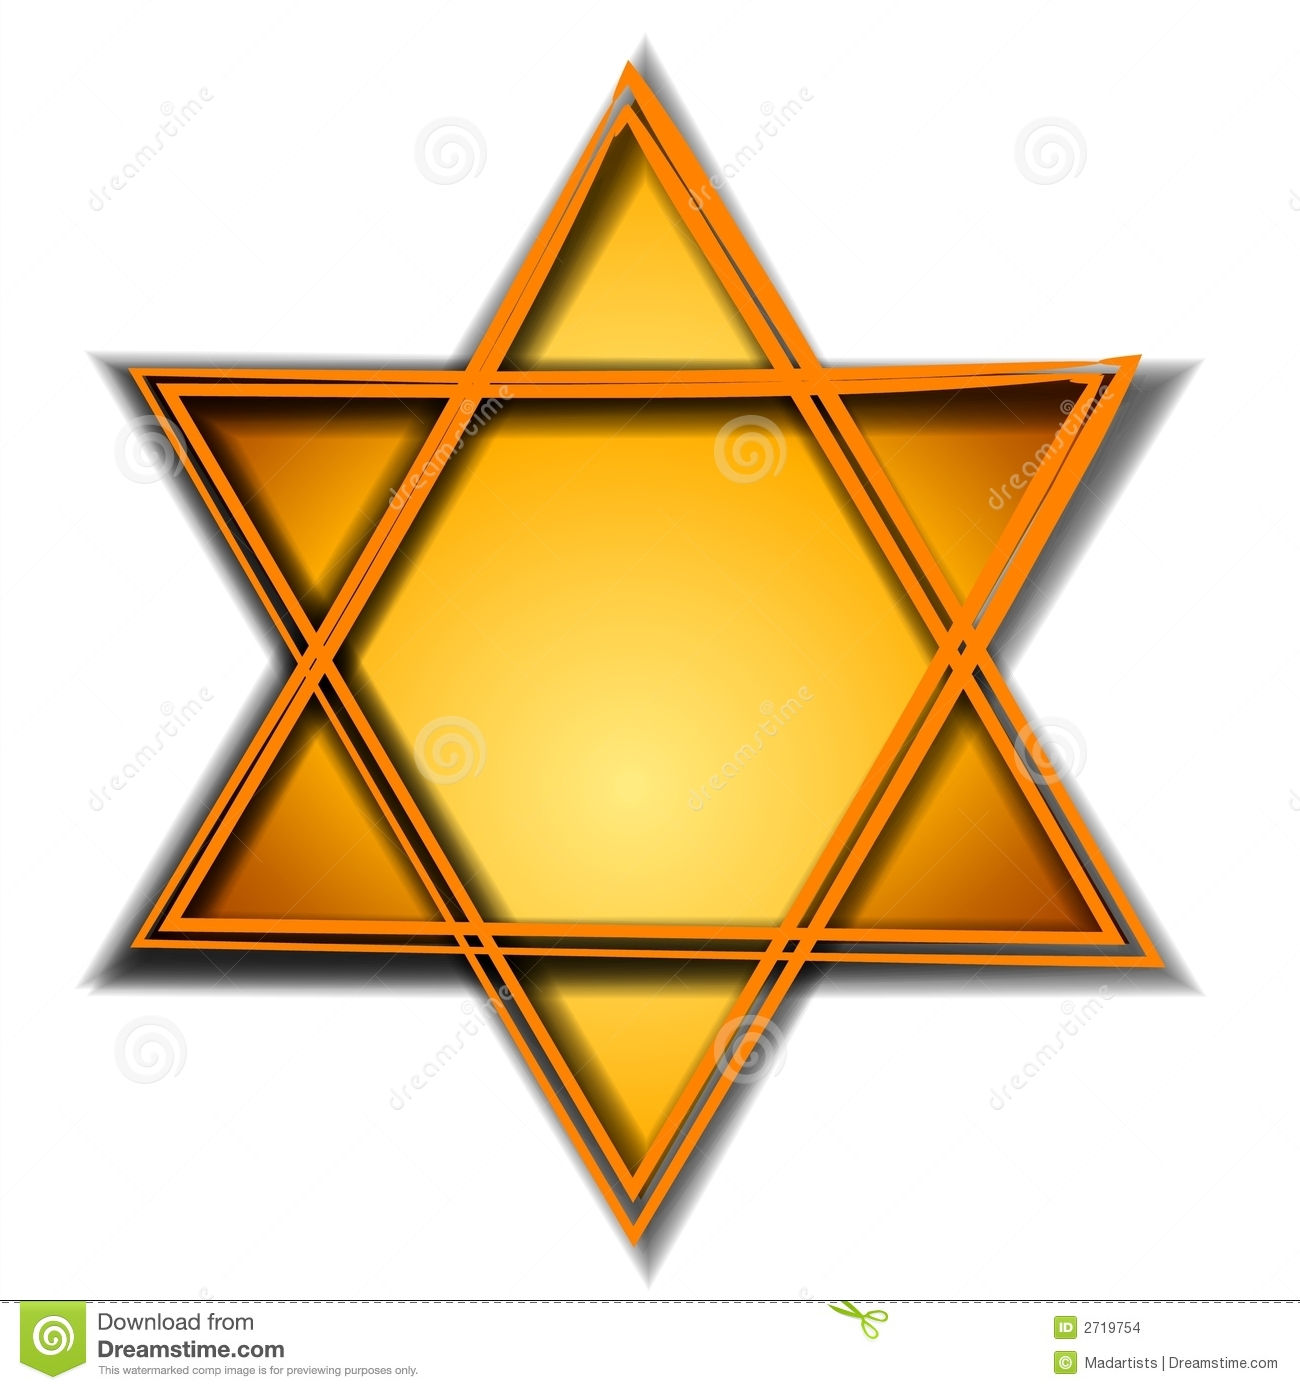 Hexagram Backgrounds on Wallpapers Vista